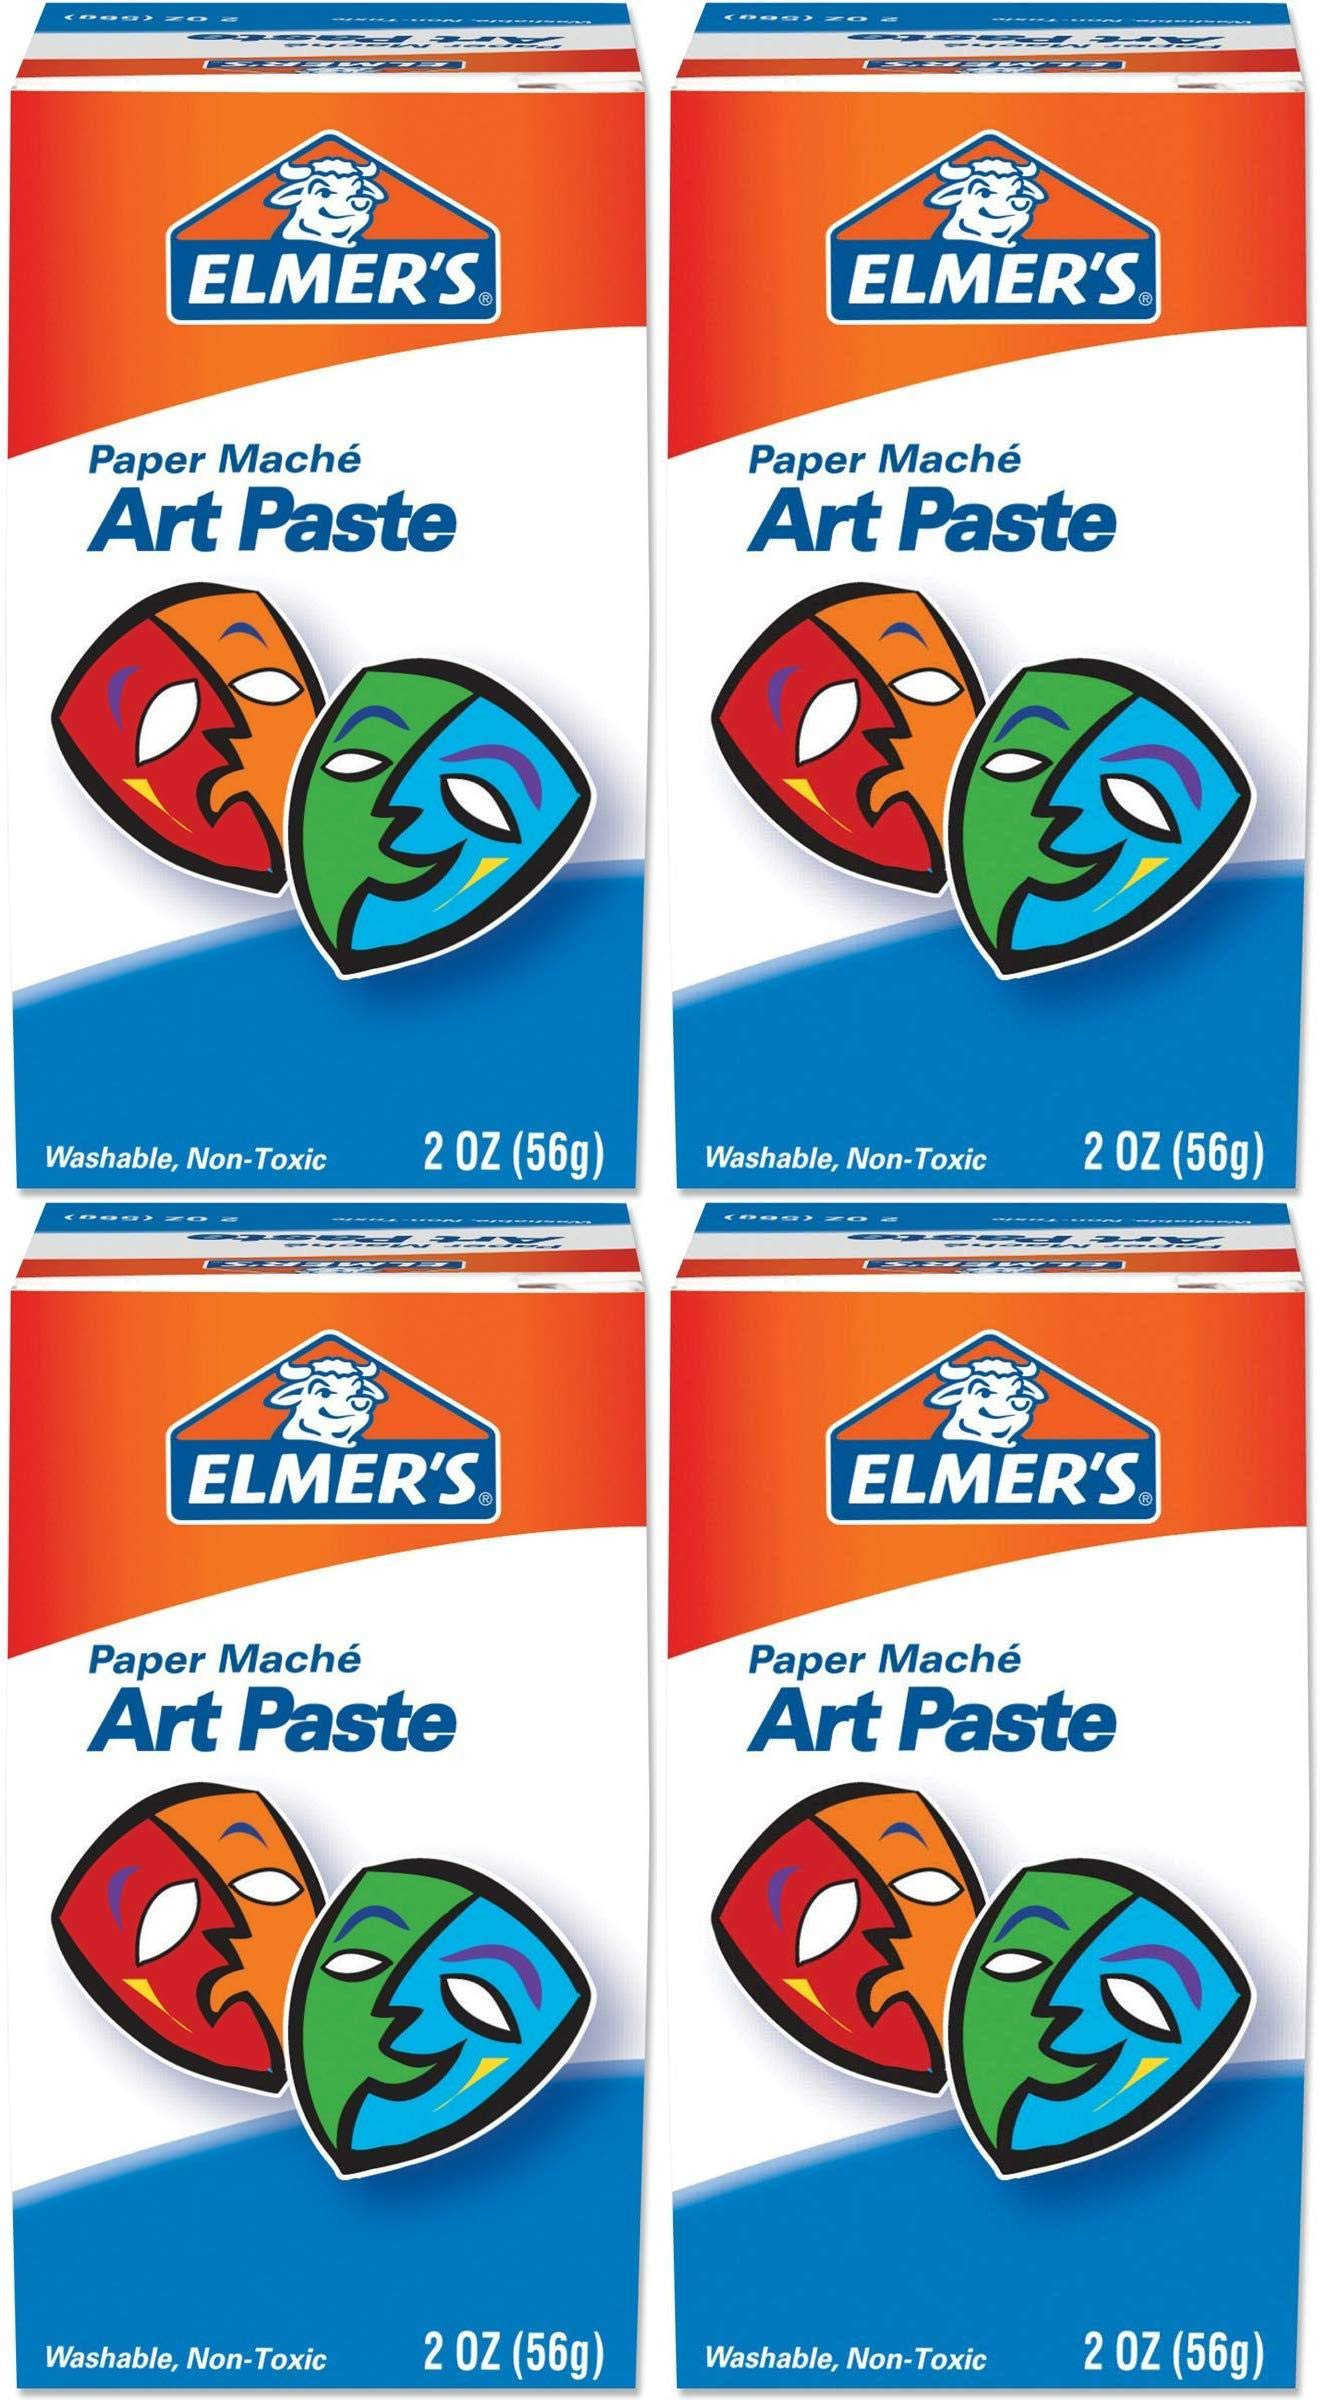 ELMERS Art Paste, Paper Macha, 2 Oz (99000) Pack of 4 by Elmer's